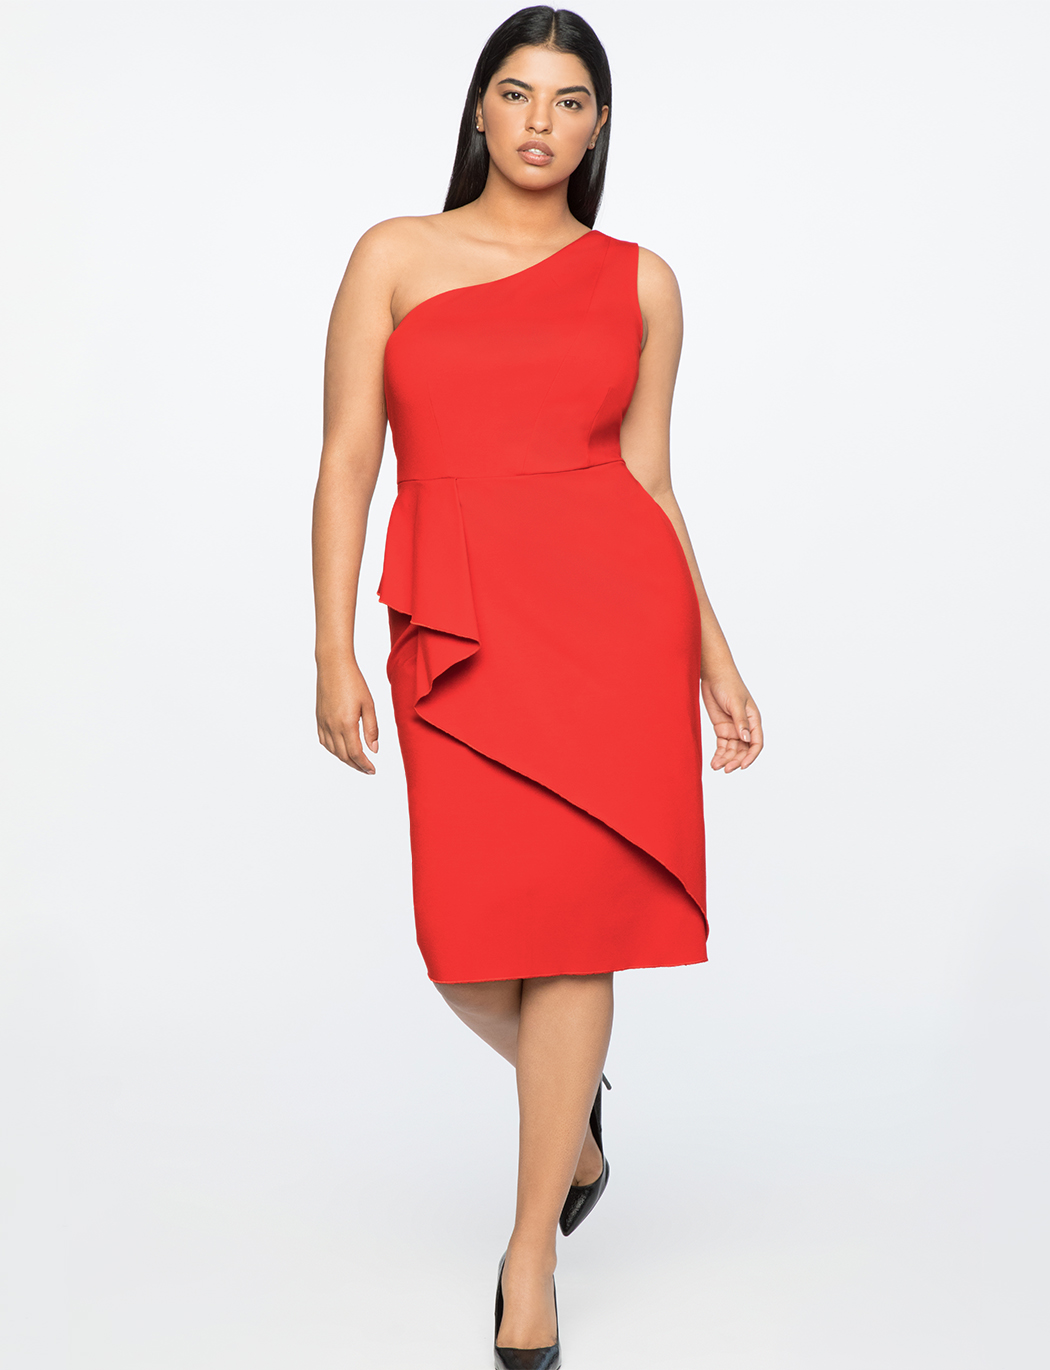 Jason Wu X ELOQUII Asymmetrical One Shoulder Dress